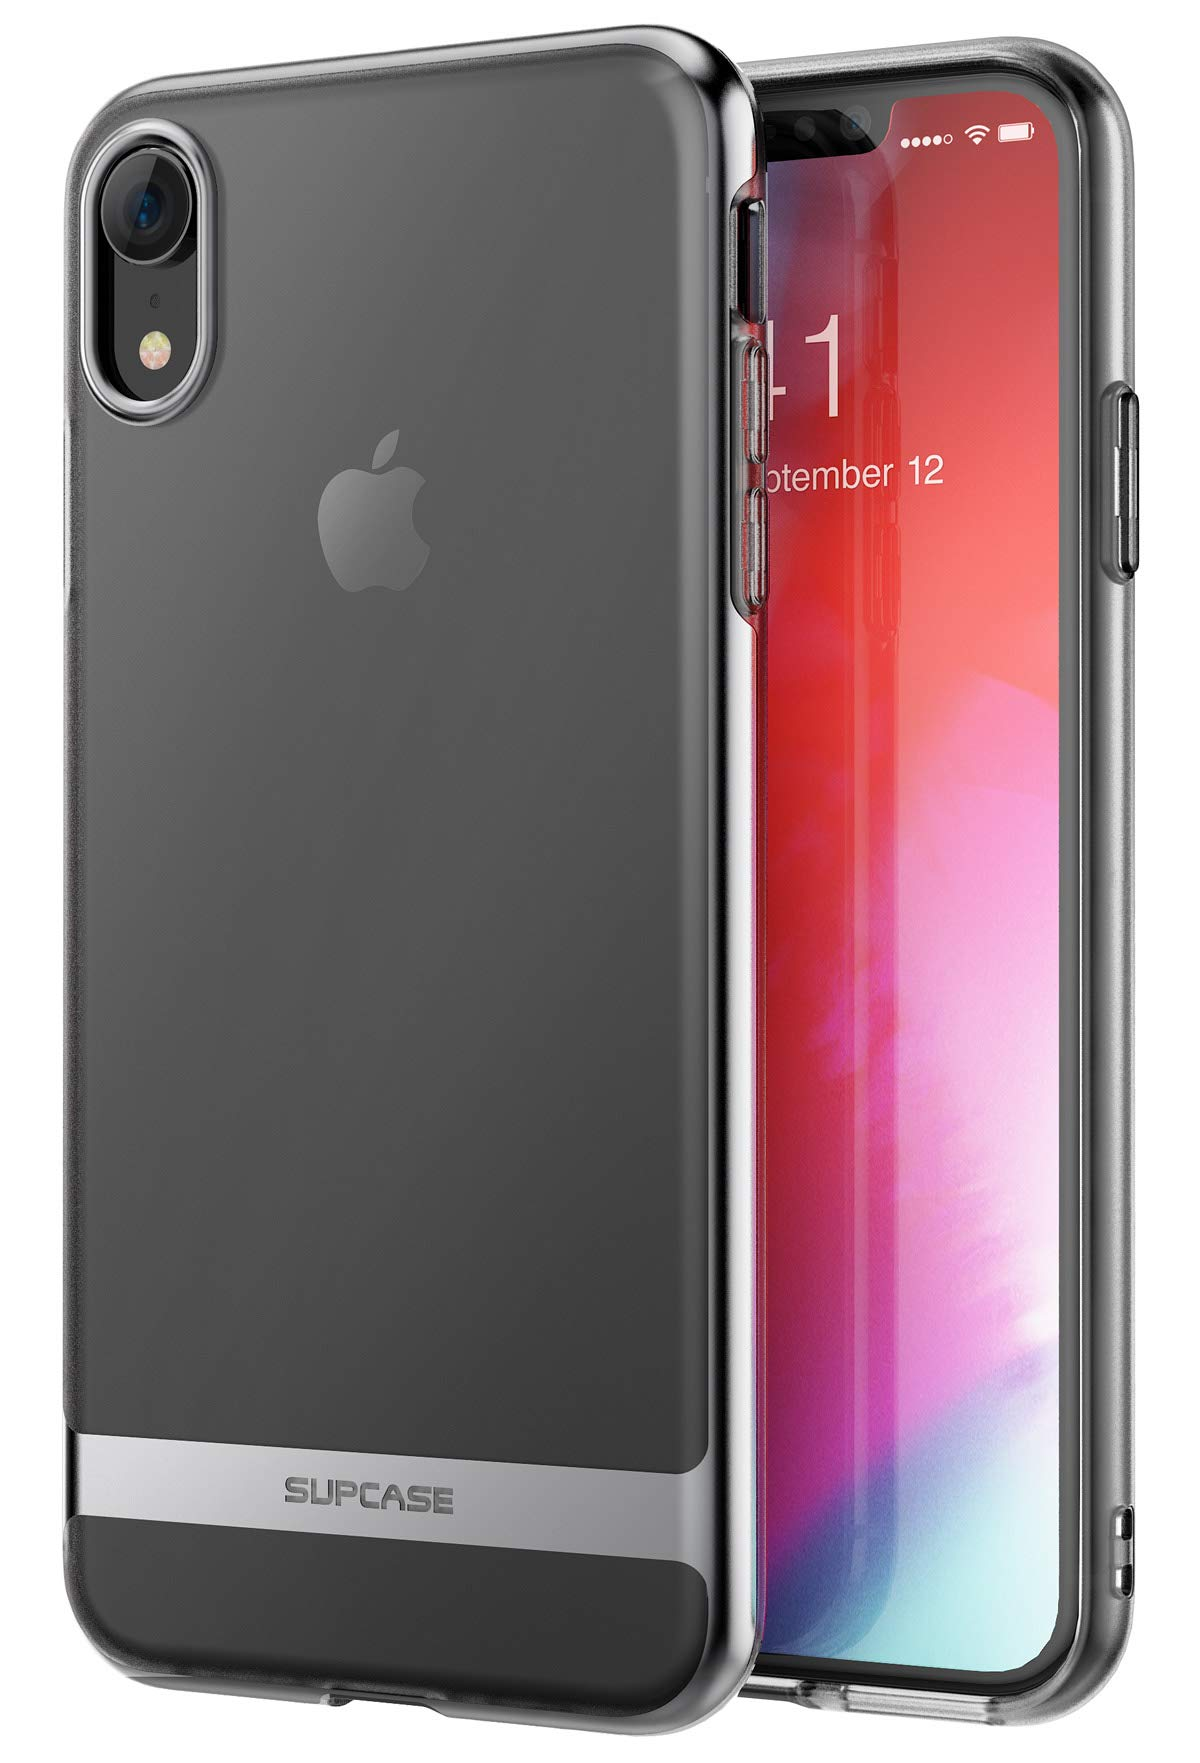 iPhone XR Case, SUPCASE Slim Clear Soft TPU Transparent Premium Protective Cover Supports Wireless Charging for iPhone XR 6.1 Inch (2018 Release) -Unicorn Beetle Metro Series (Black)